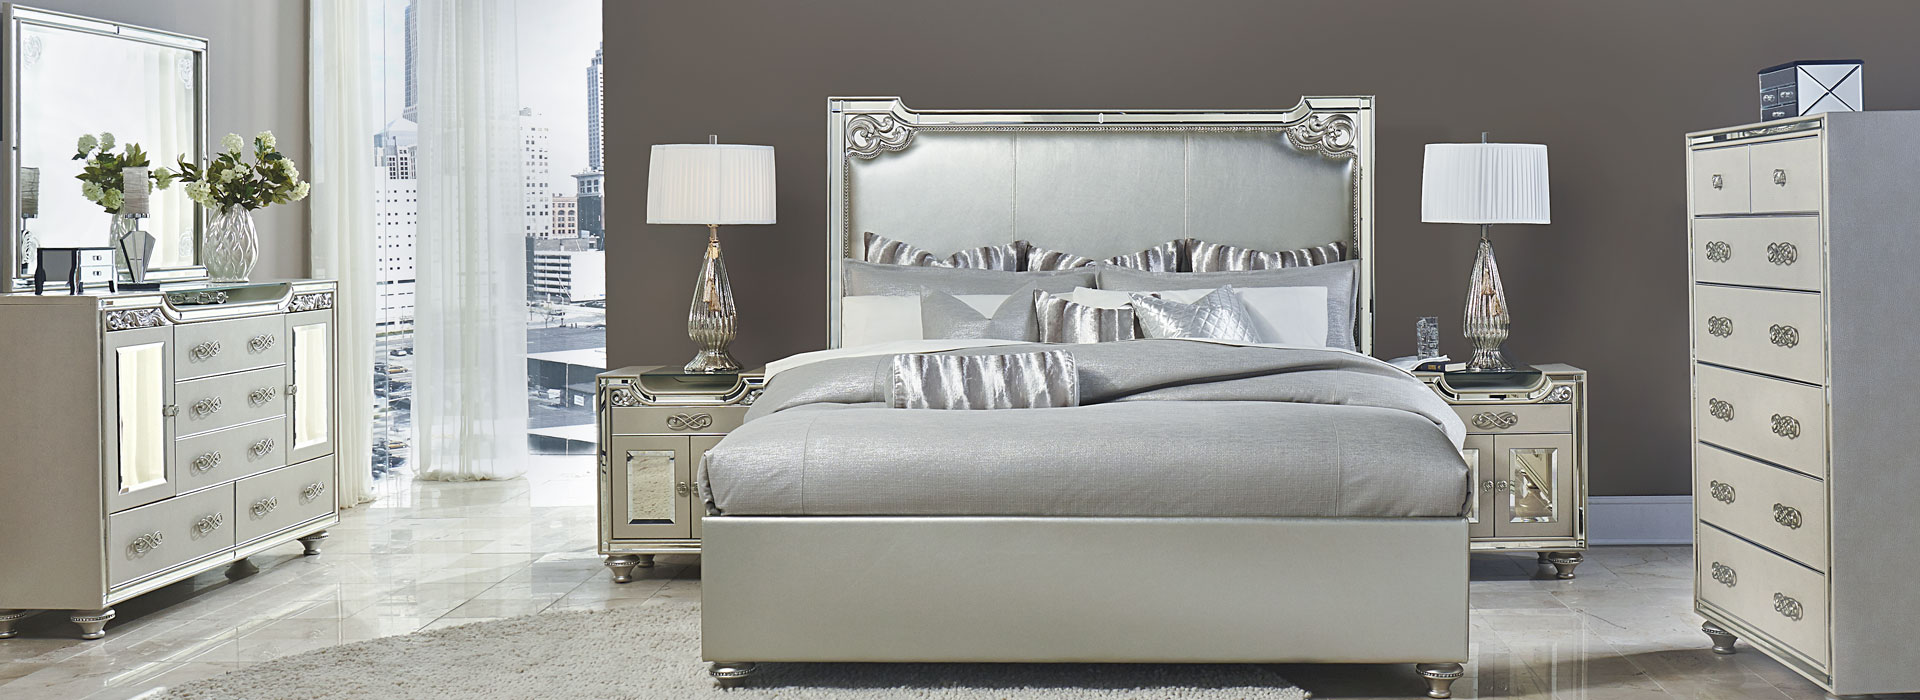 The Bel Air Park Collection Is Simply Captivating, Offering Elements Of  Hollywood Glam With The Charm And Grace Of French Regal Embellishments.